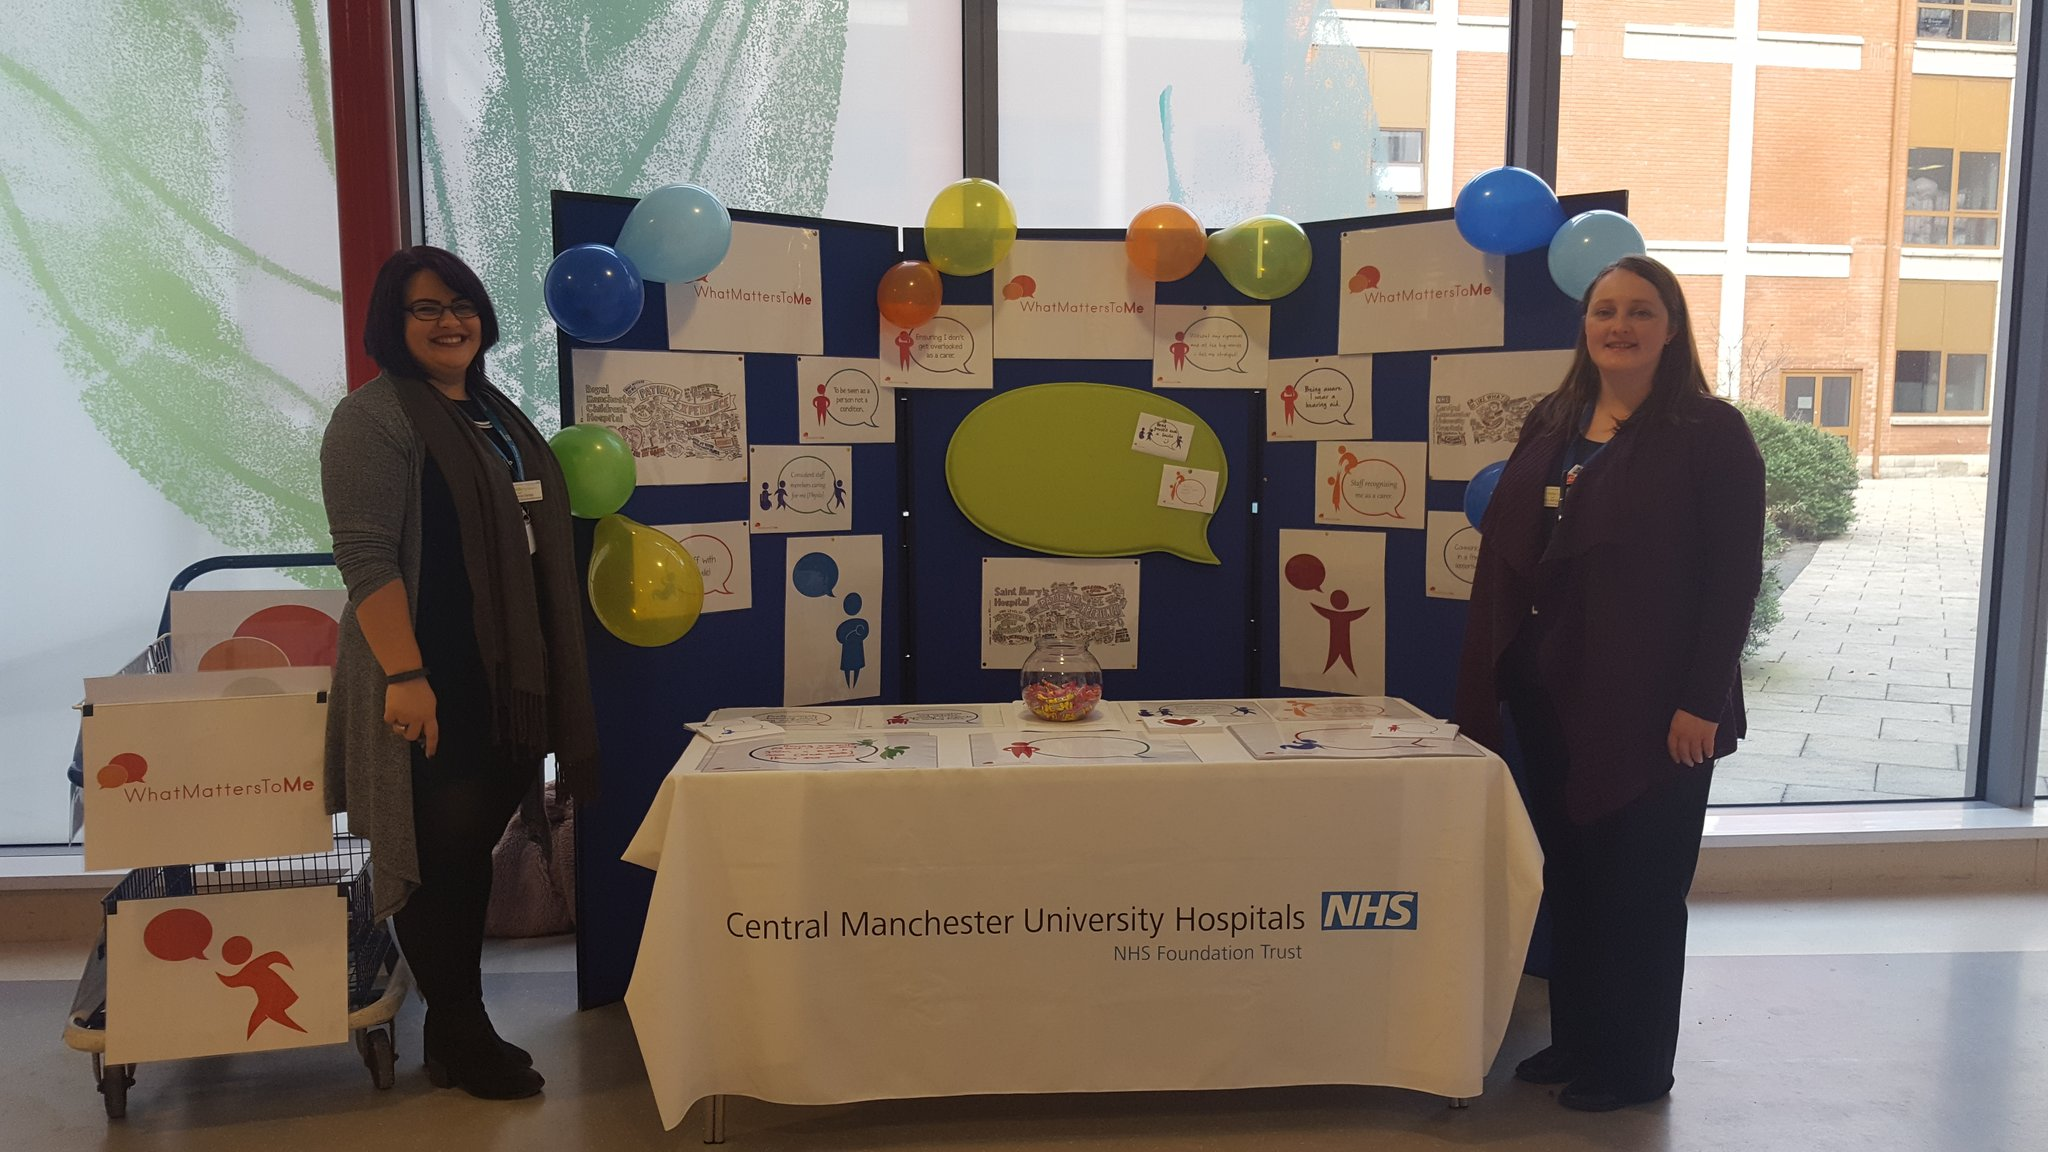 What Matters to you? Come & share your thoughts with the team @CMFTNHS MRI entrance 2 @cmftchiefnurse #WMTM #patientexperience #proudtocare https://t.co/bNxZYjKkji